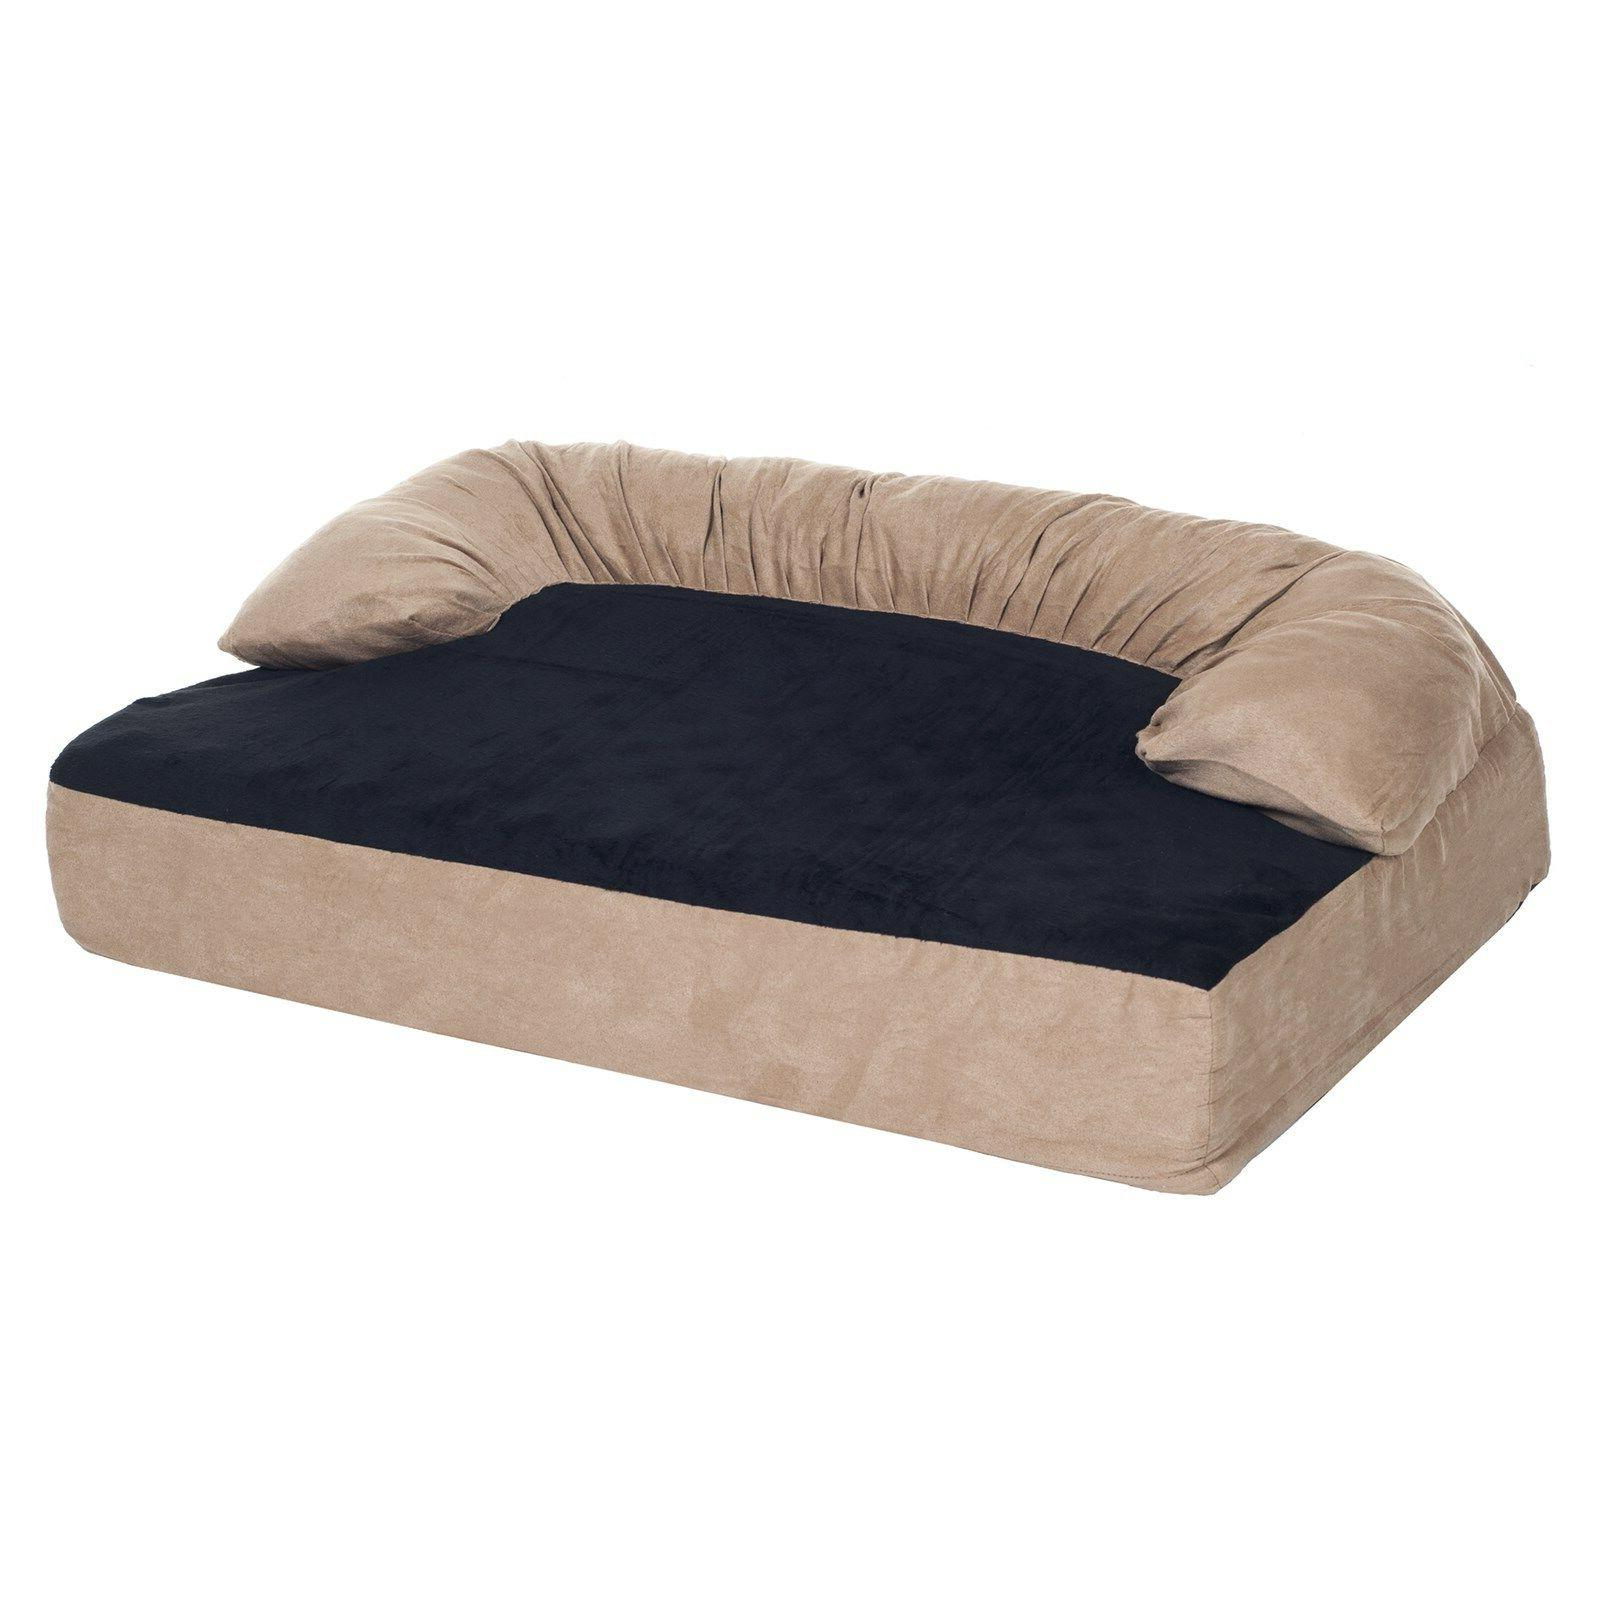 PAW Orthopedic Memory Foam Joint Relief Bolster Dog Bed 25 x